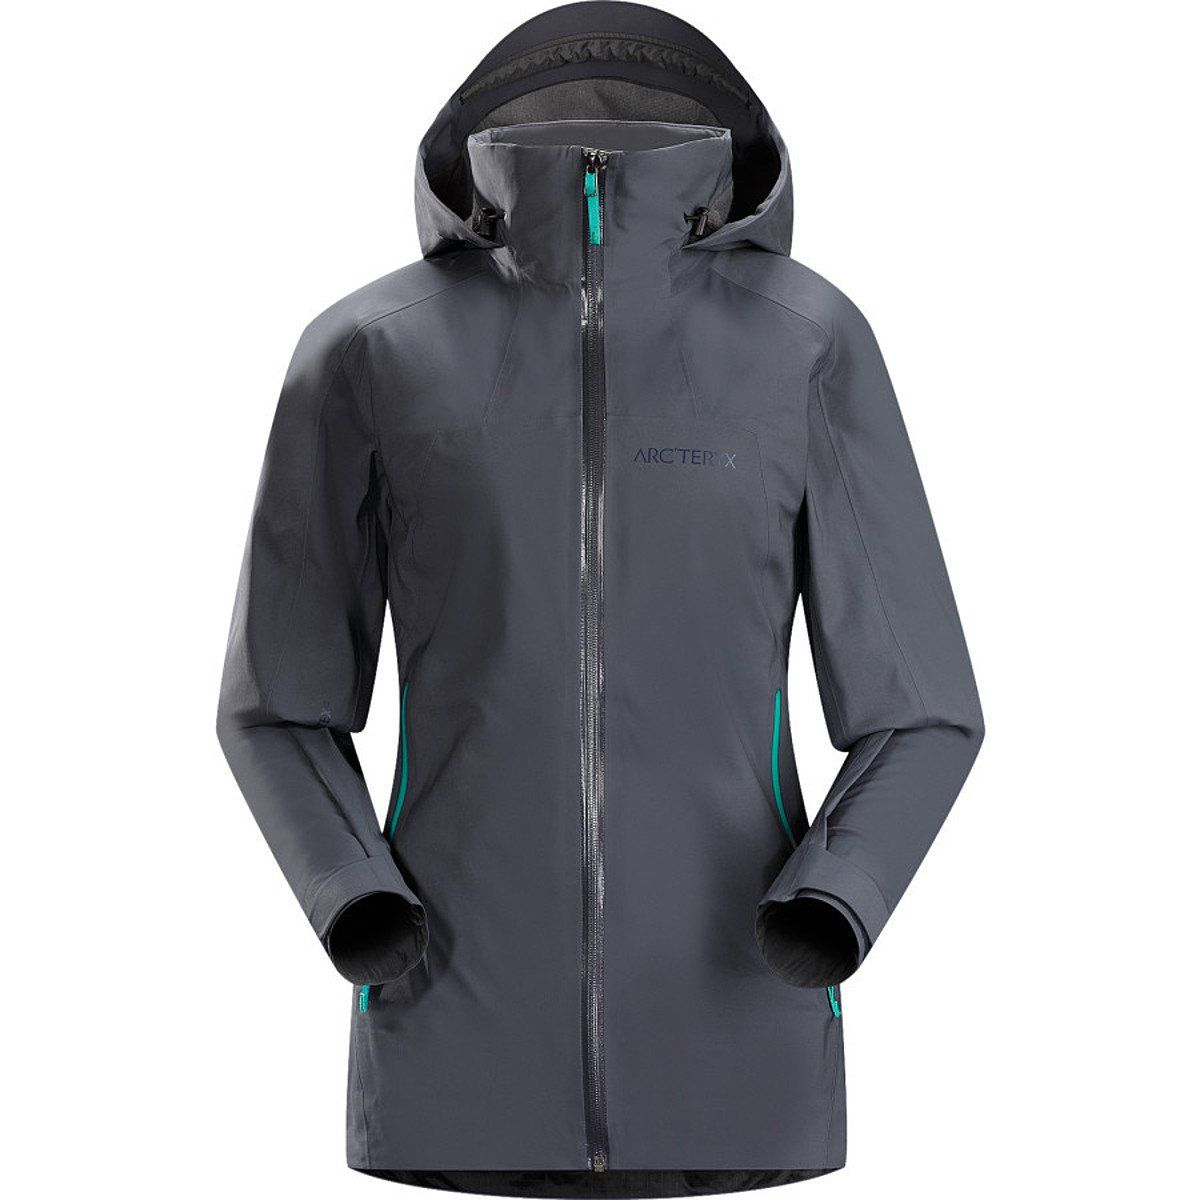 e4302aef2 The 9 Best Ski Clothing Brands of 2019